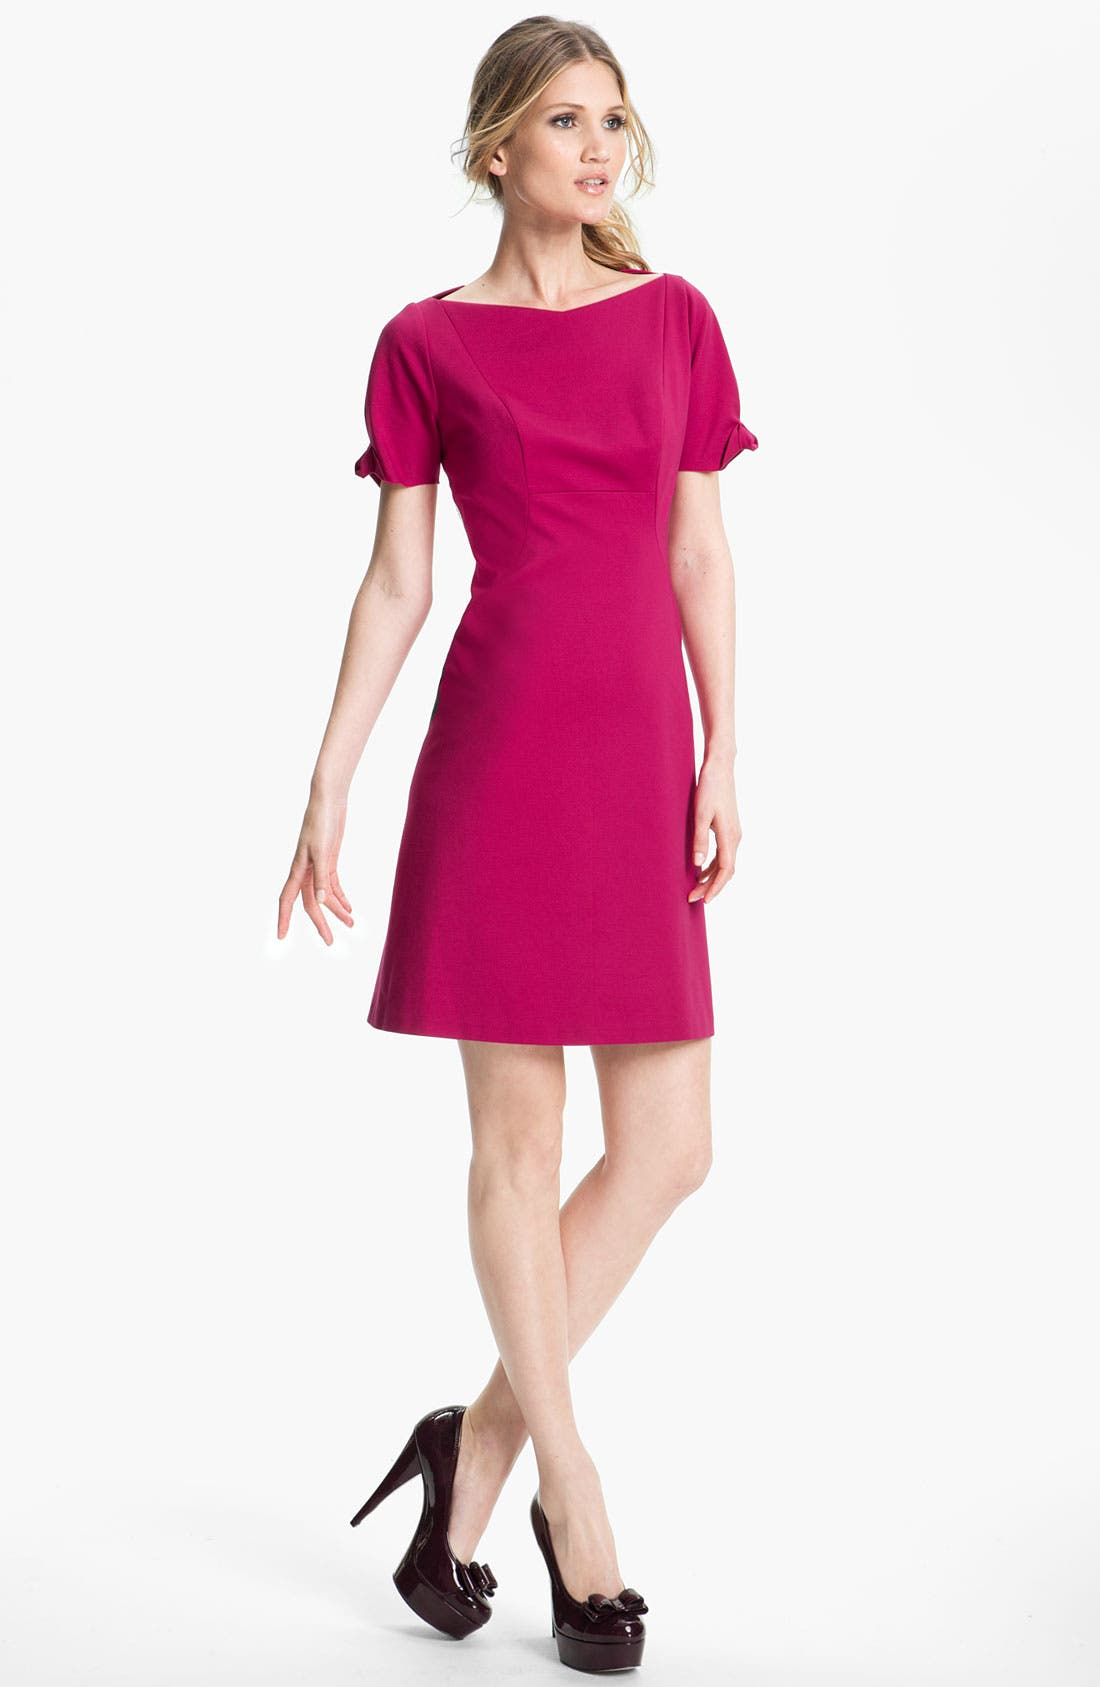 Alternate Image 1 Selected - Elie Tahari Exclusive for Nordstrom 'Trudy' Dress